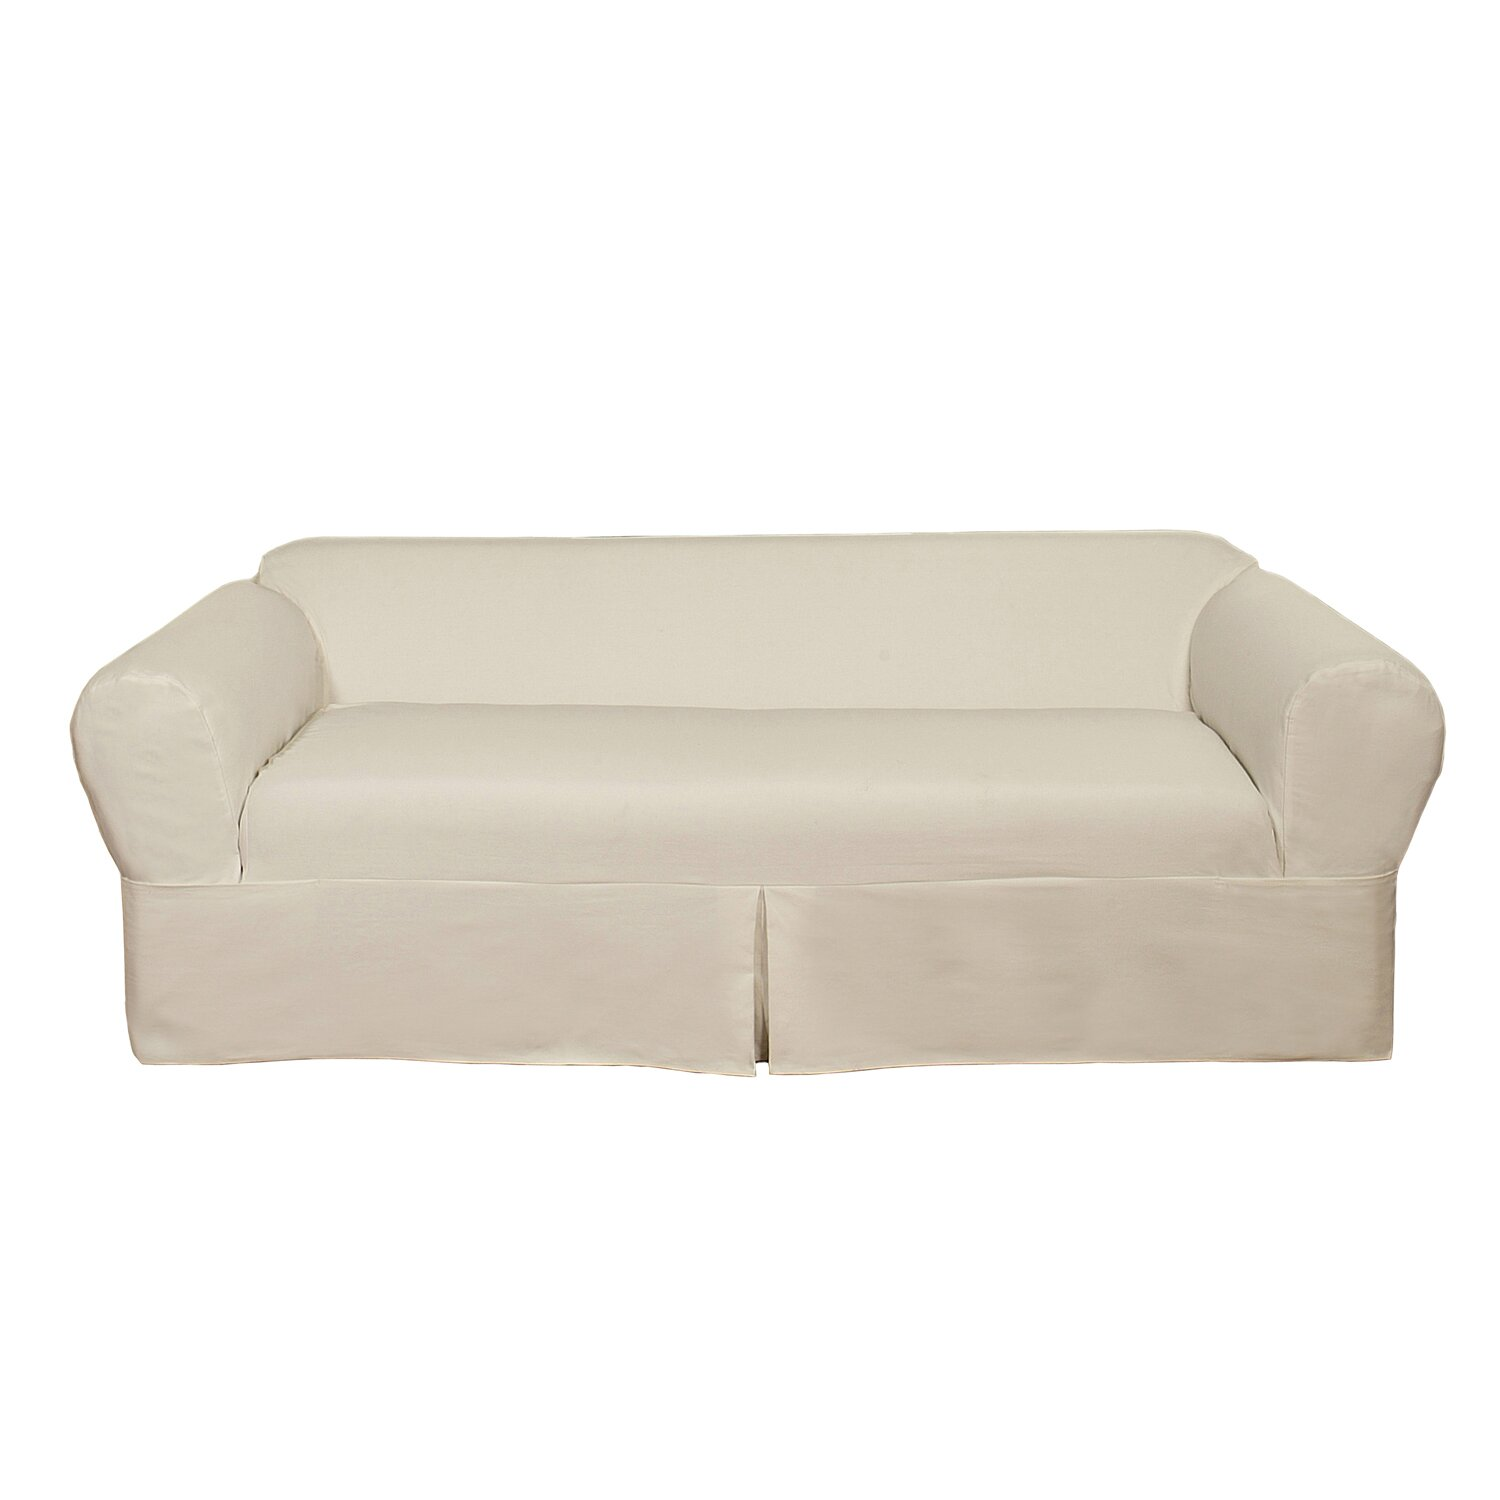 Darby Home Co Brushed Twill Sofa Slipcover amp Reviews Wayfair :  from www.wayfair.com size 1500 x 1500 jpeg 112kB